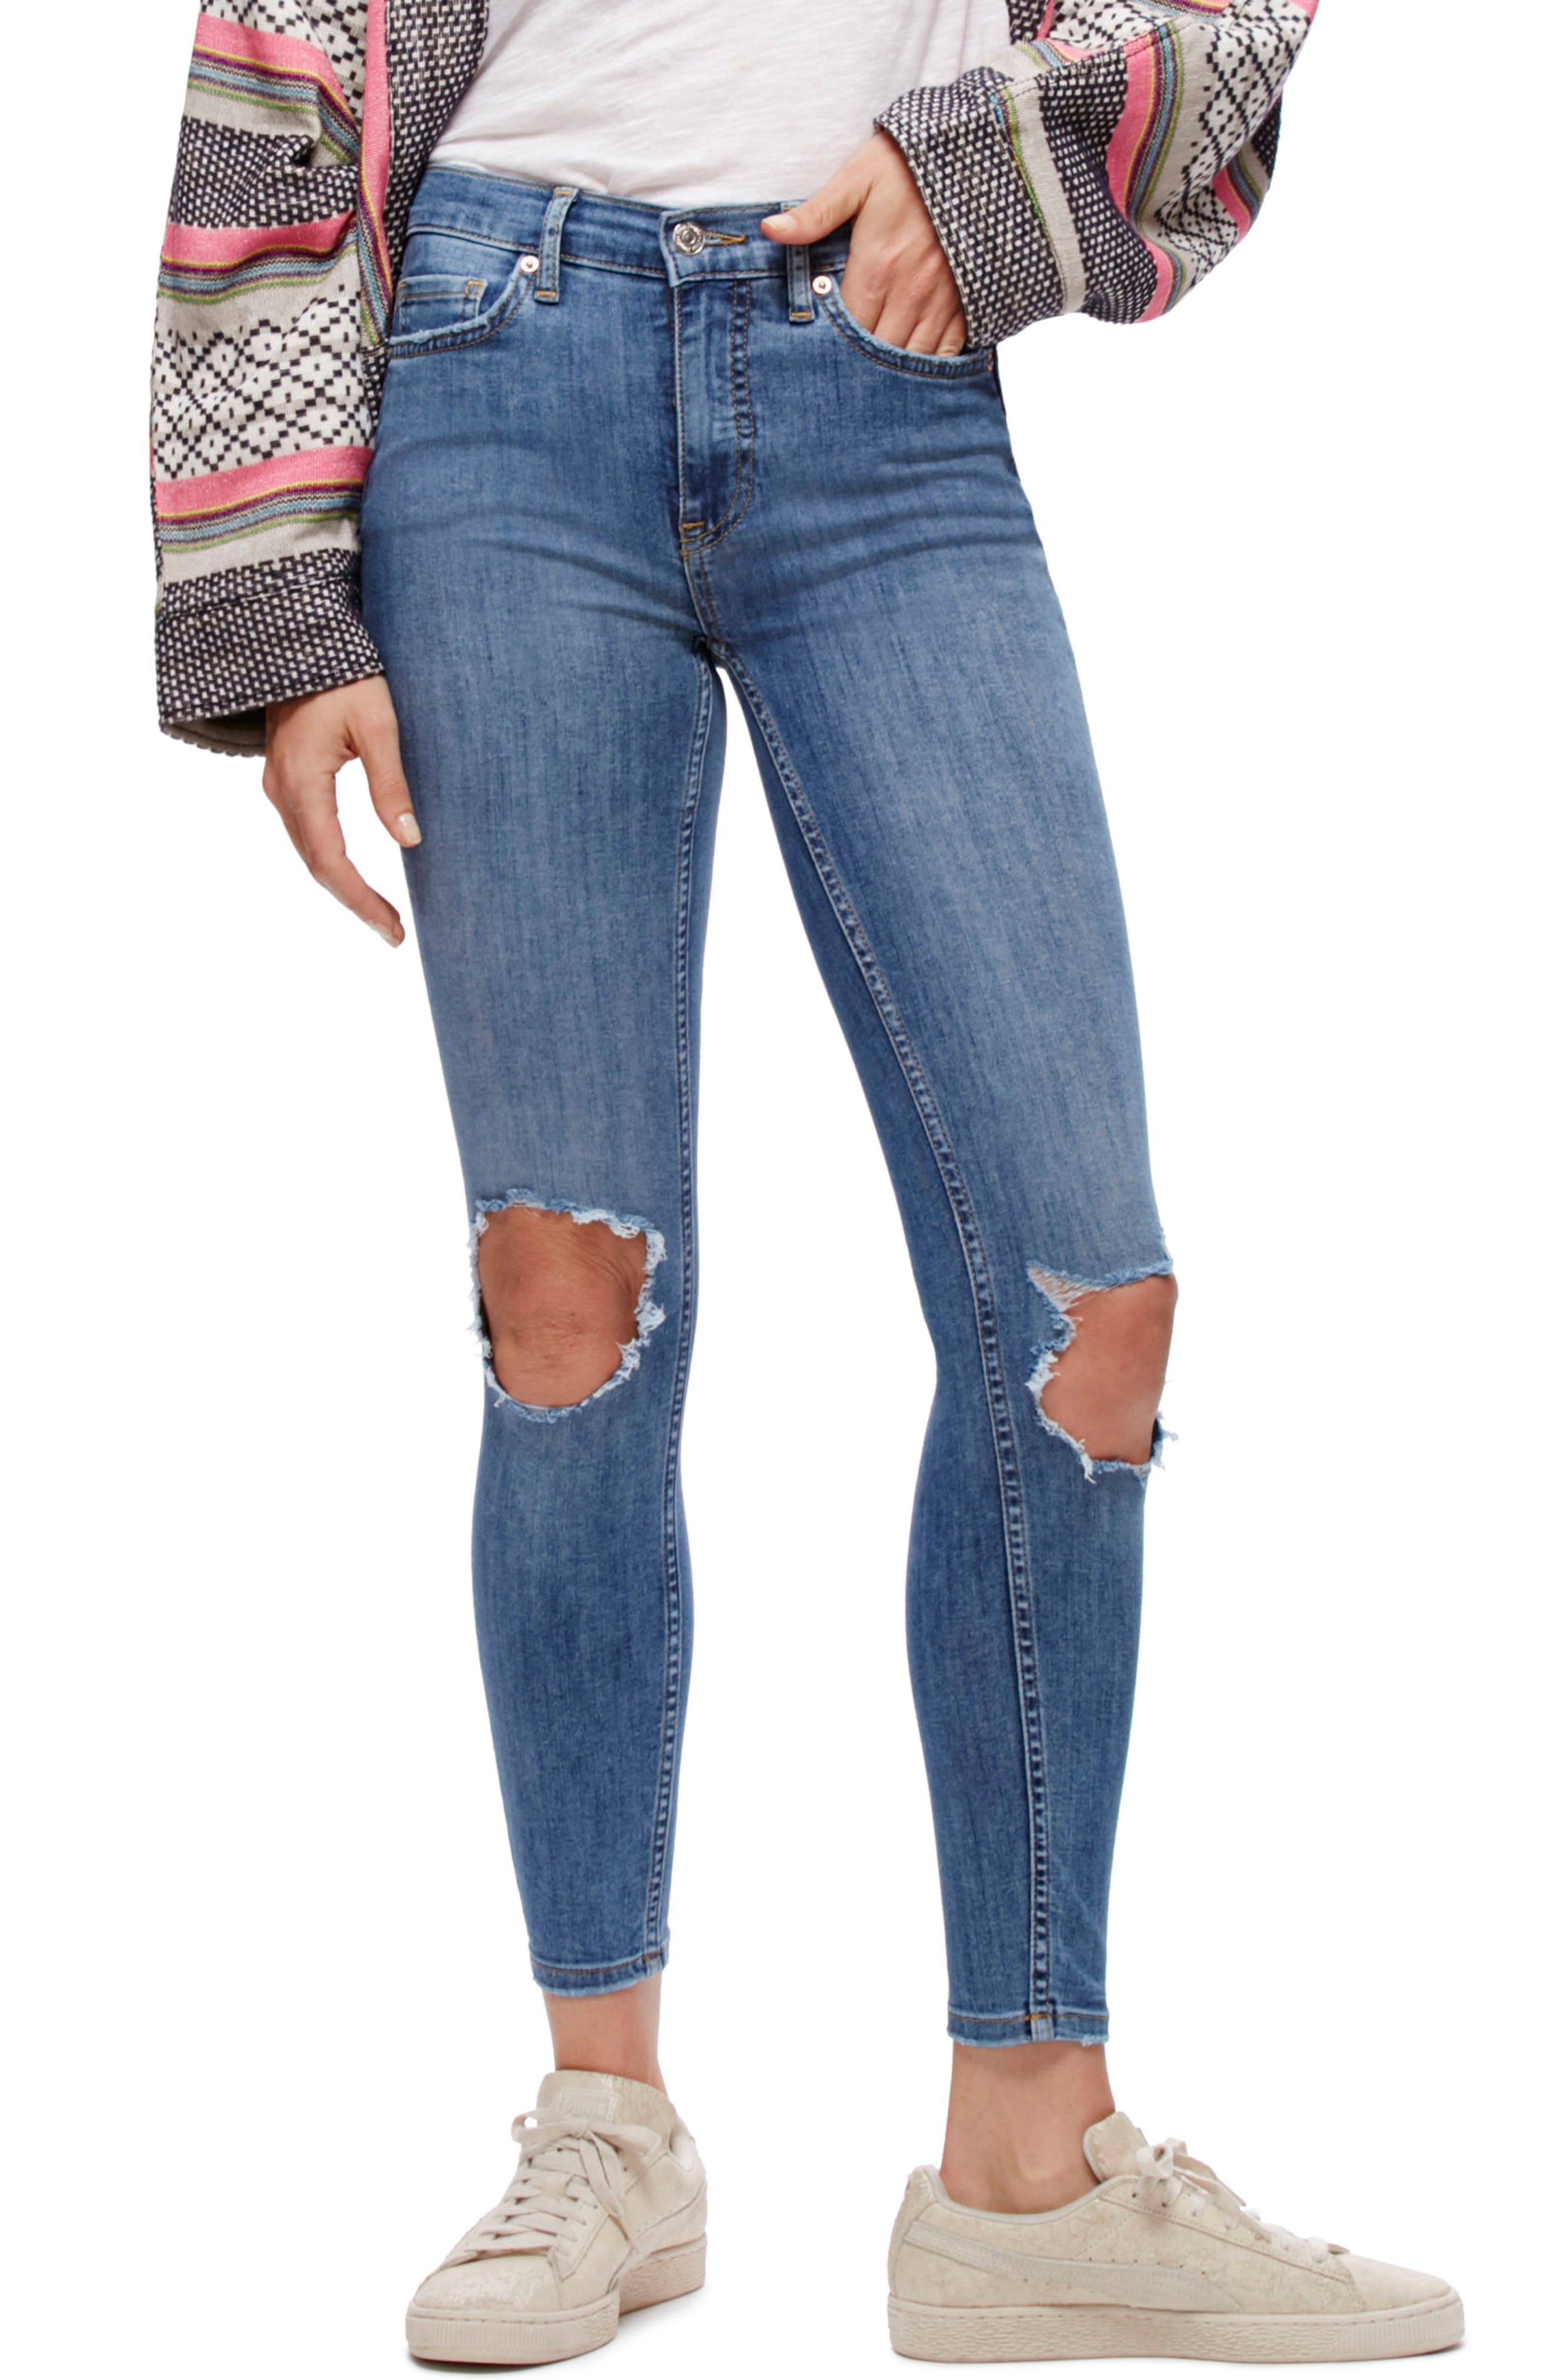 Alternate Image 1 Selected - Free People High Rise Busted Knee Skinny Jeans (Light Denim)